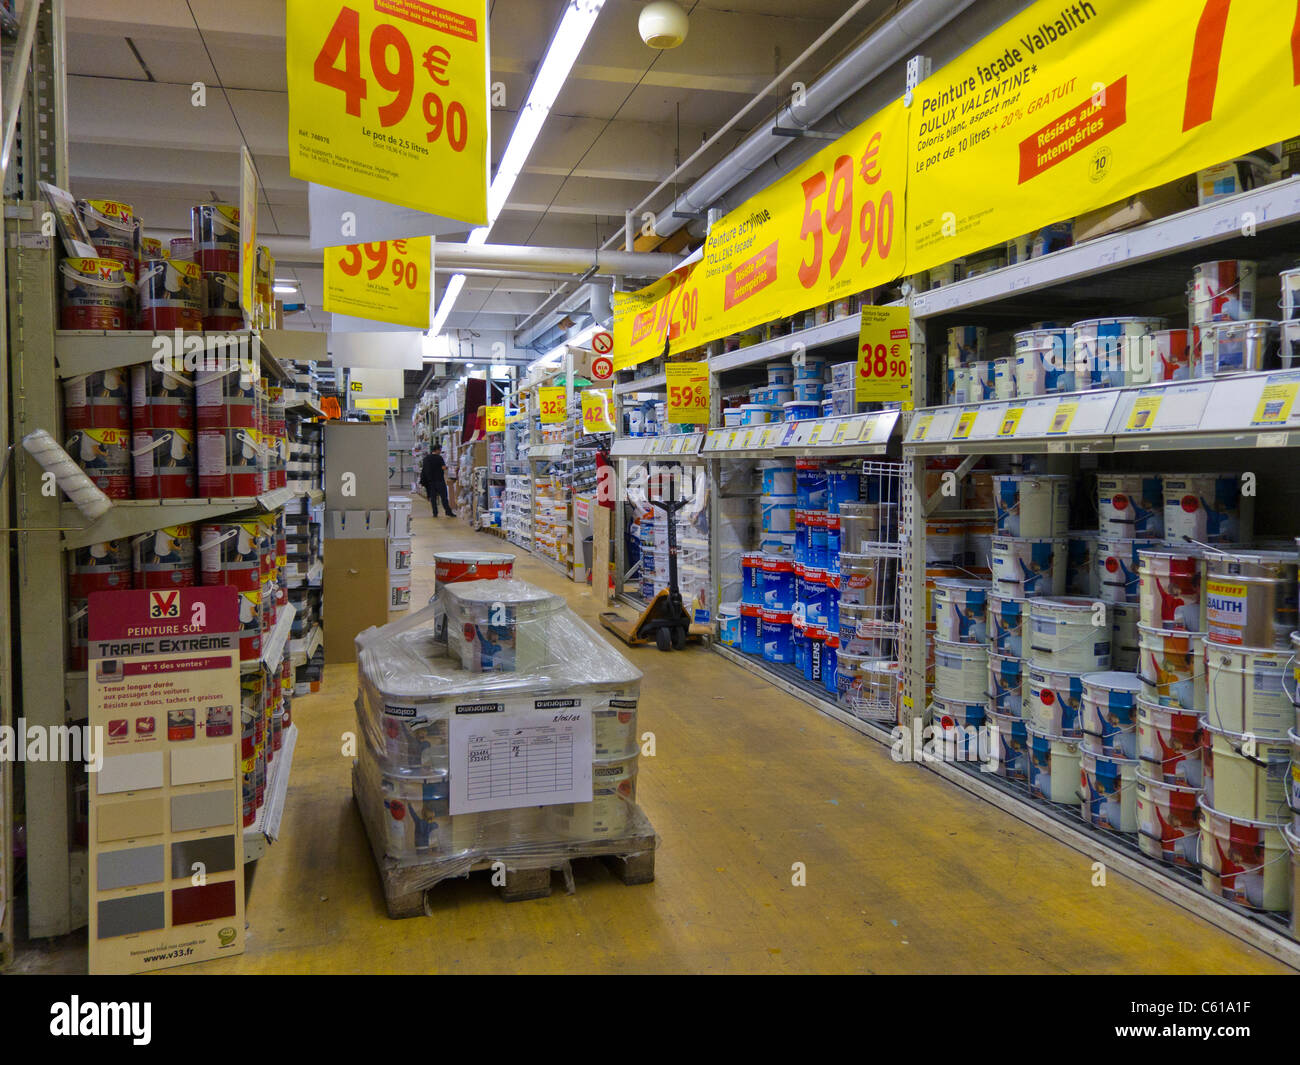 paris france inside french hardware store aisles castorama stock photo 38138507 alamy. Black Bedroom Furniture Sets. Home Design Ideas